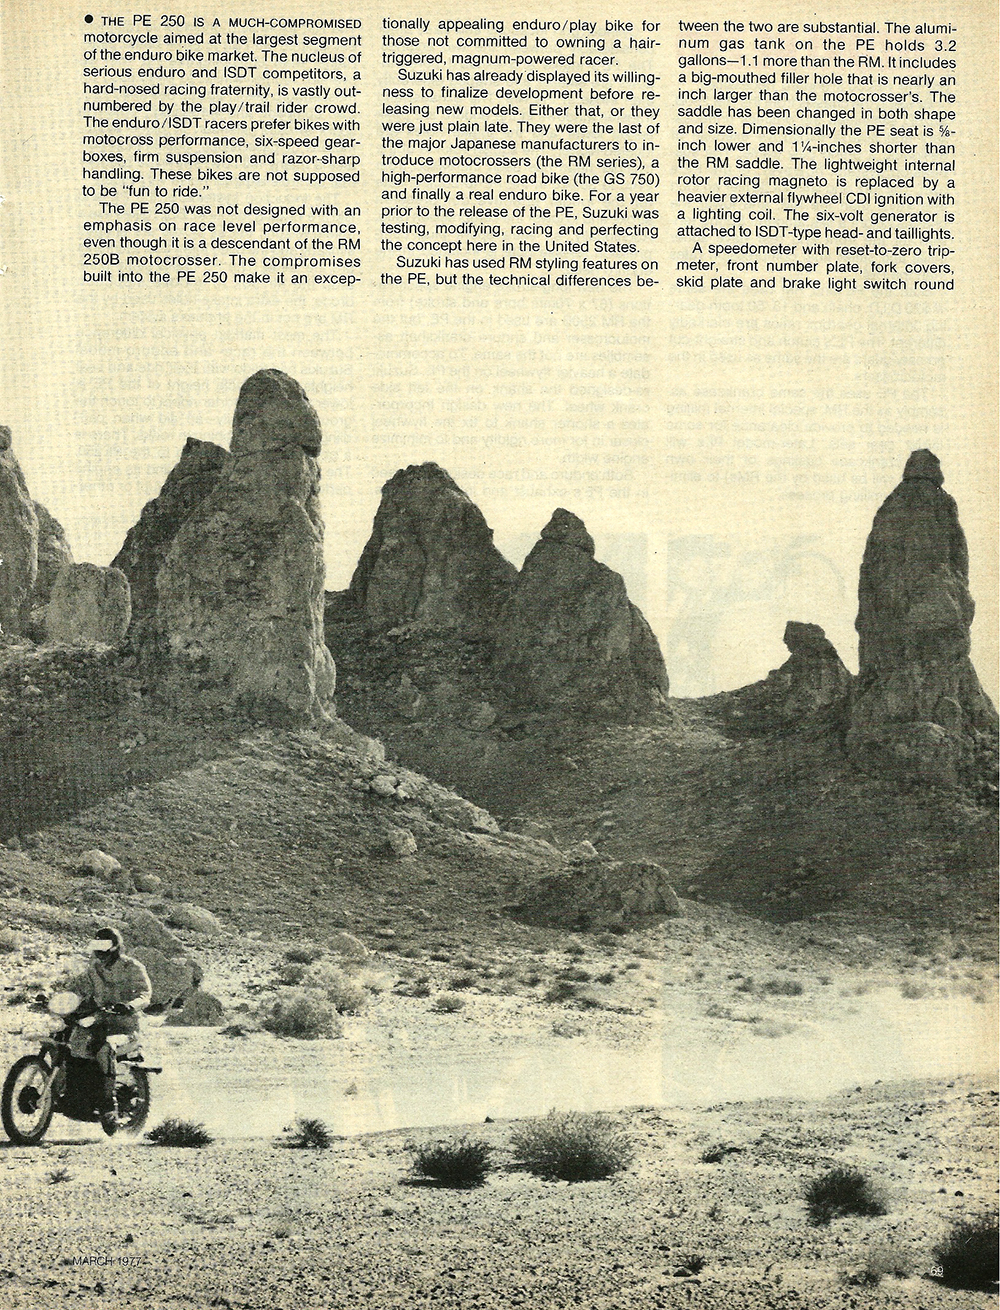 1977 Suzuki PE250 road test 2.jpg